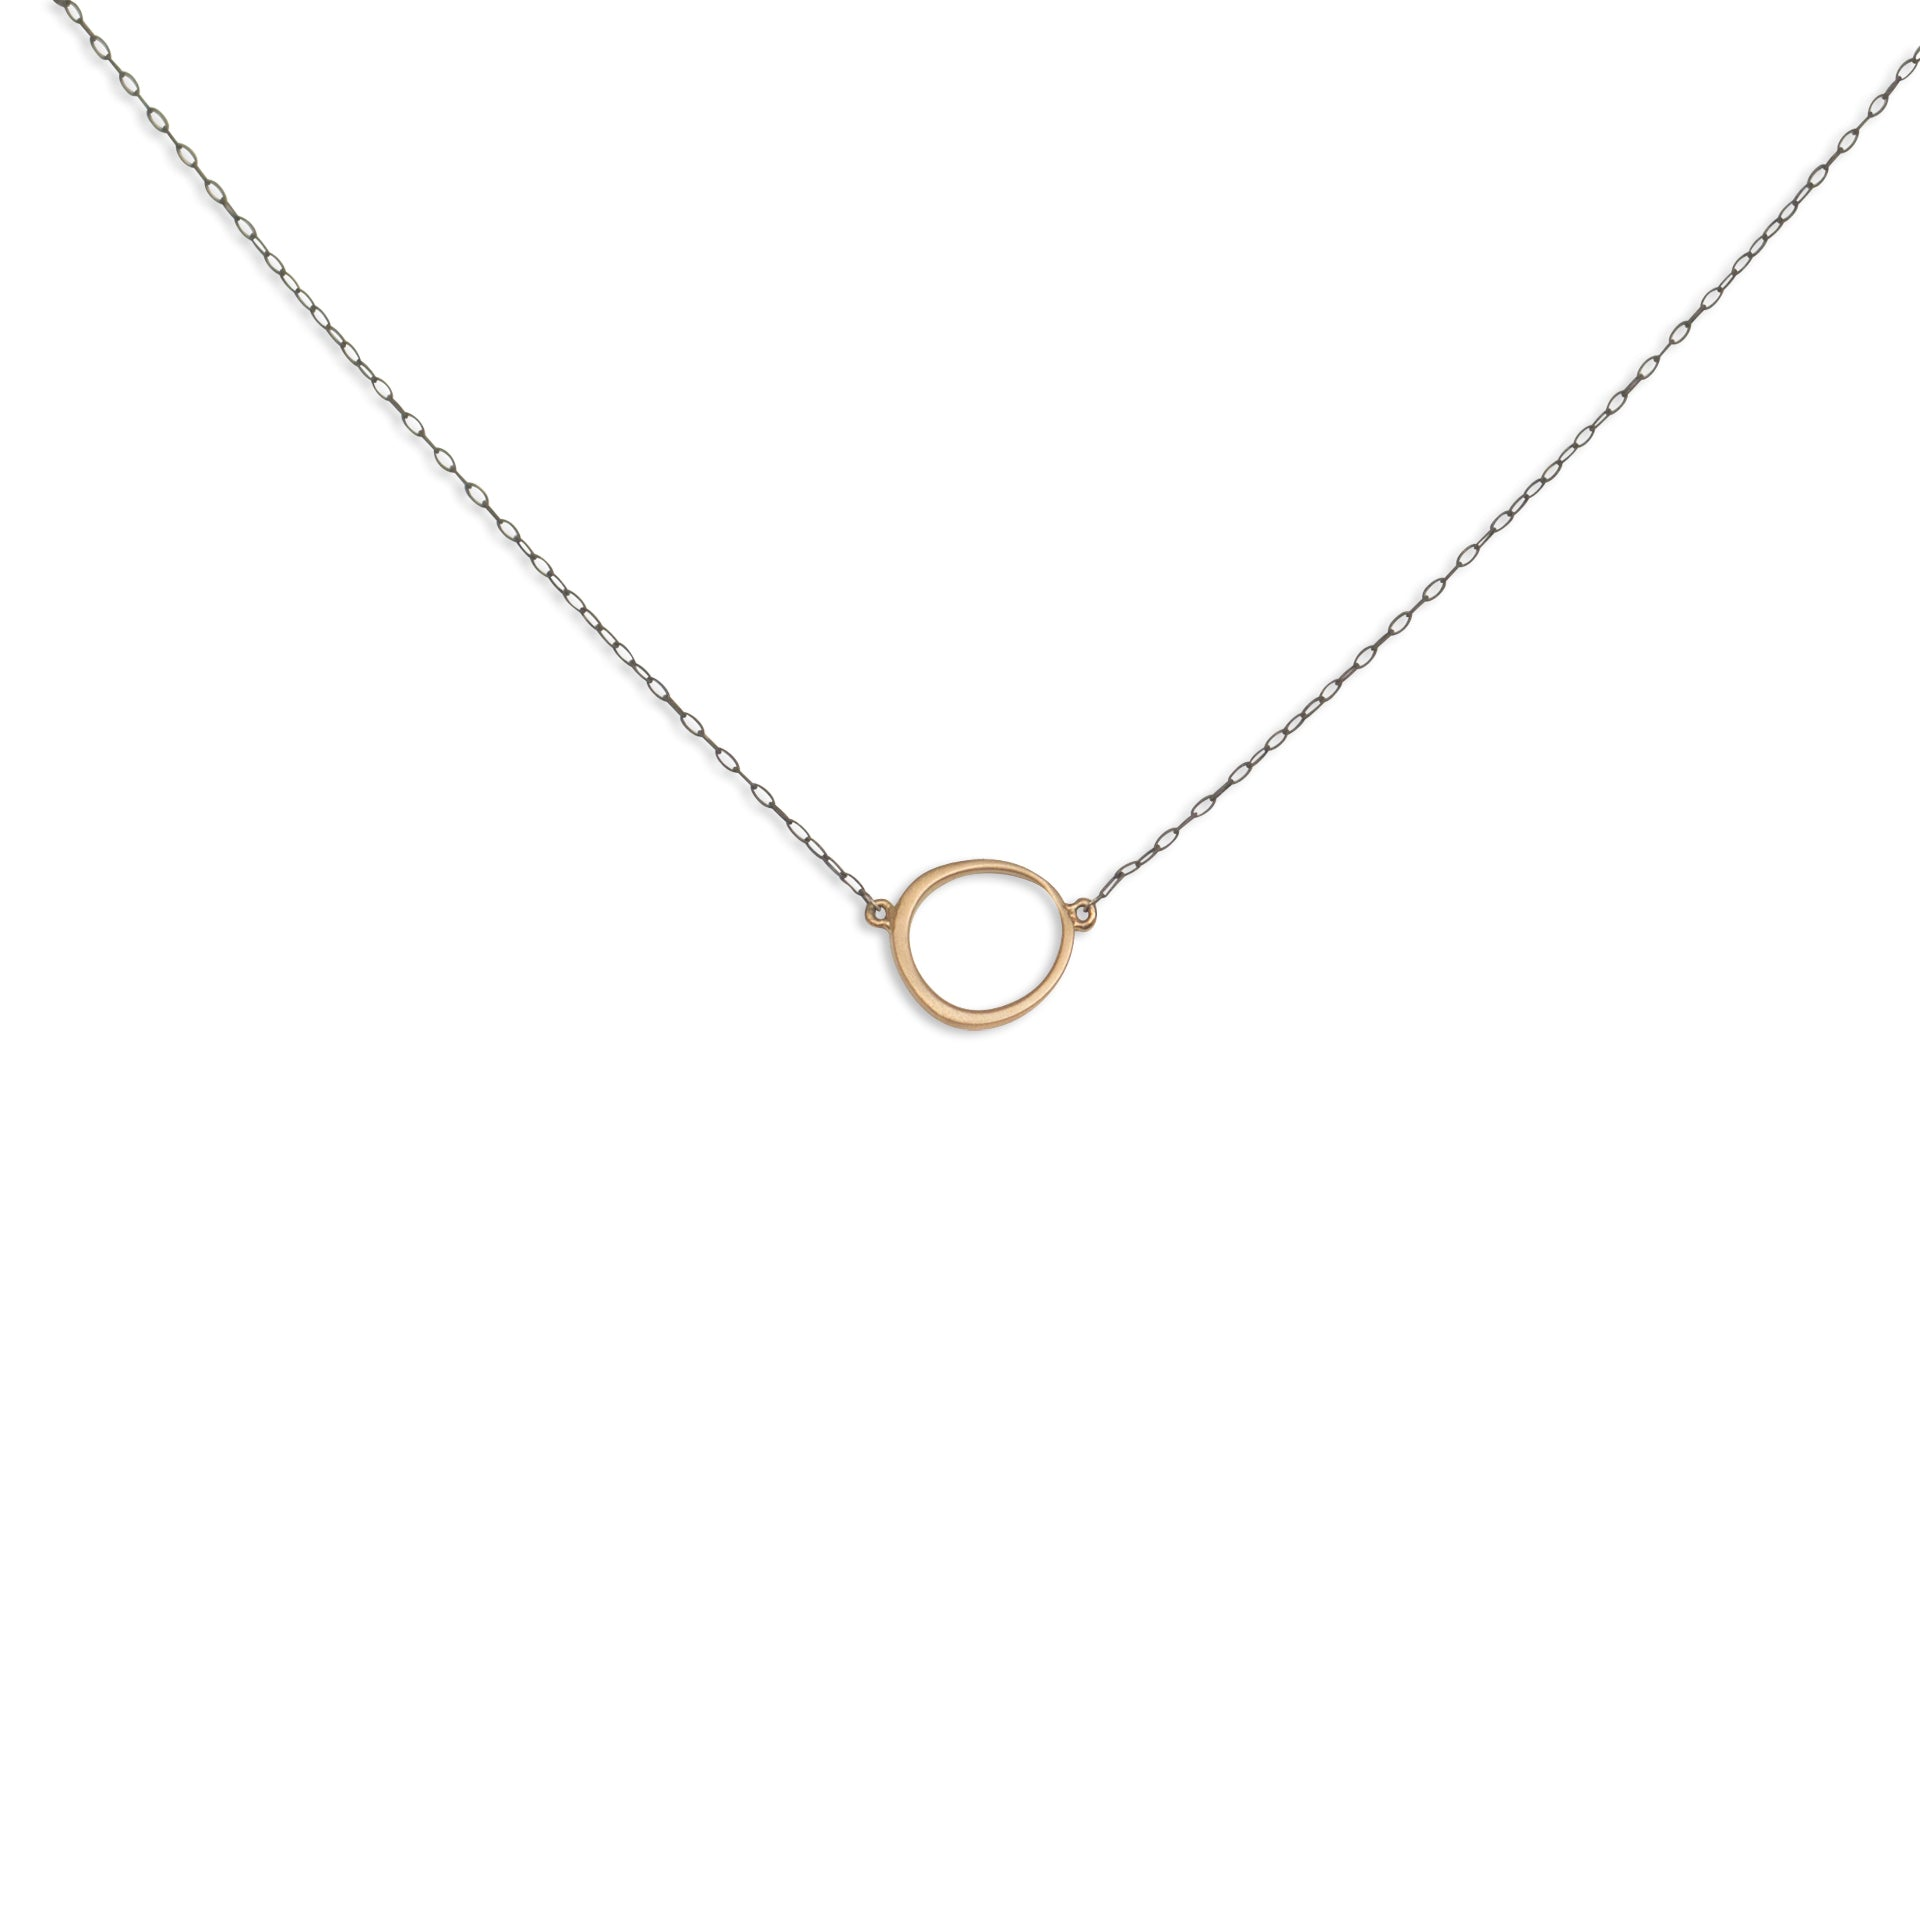 14k yellow gold/oxidized silver chain offset circle necklace